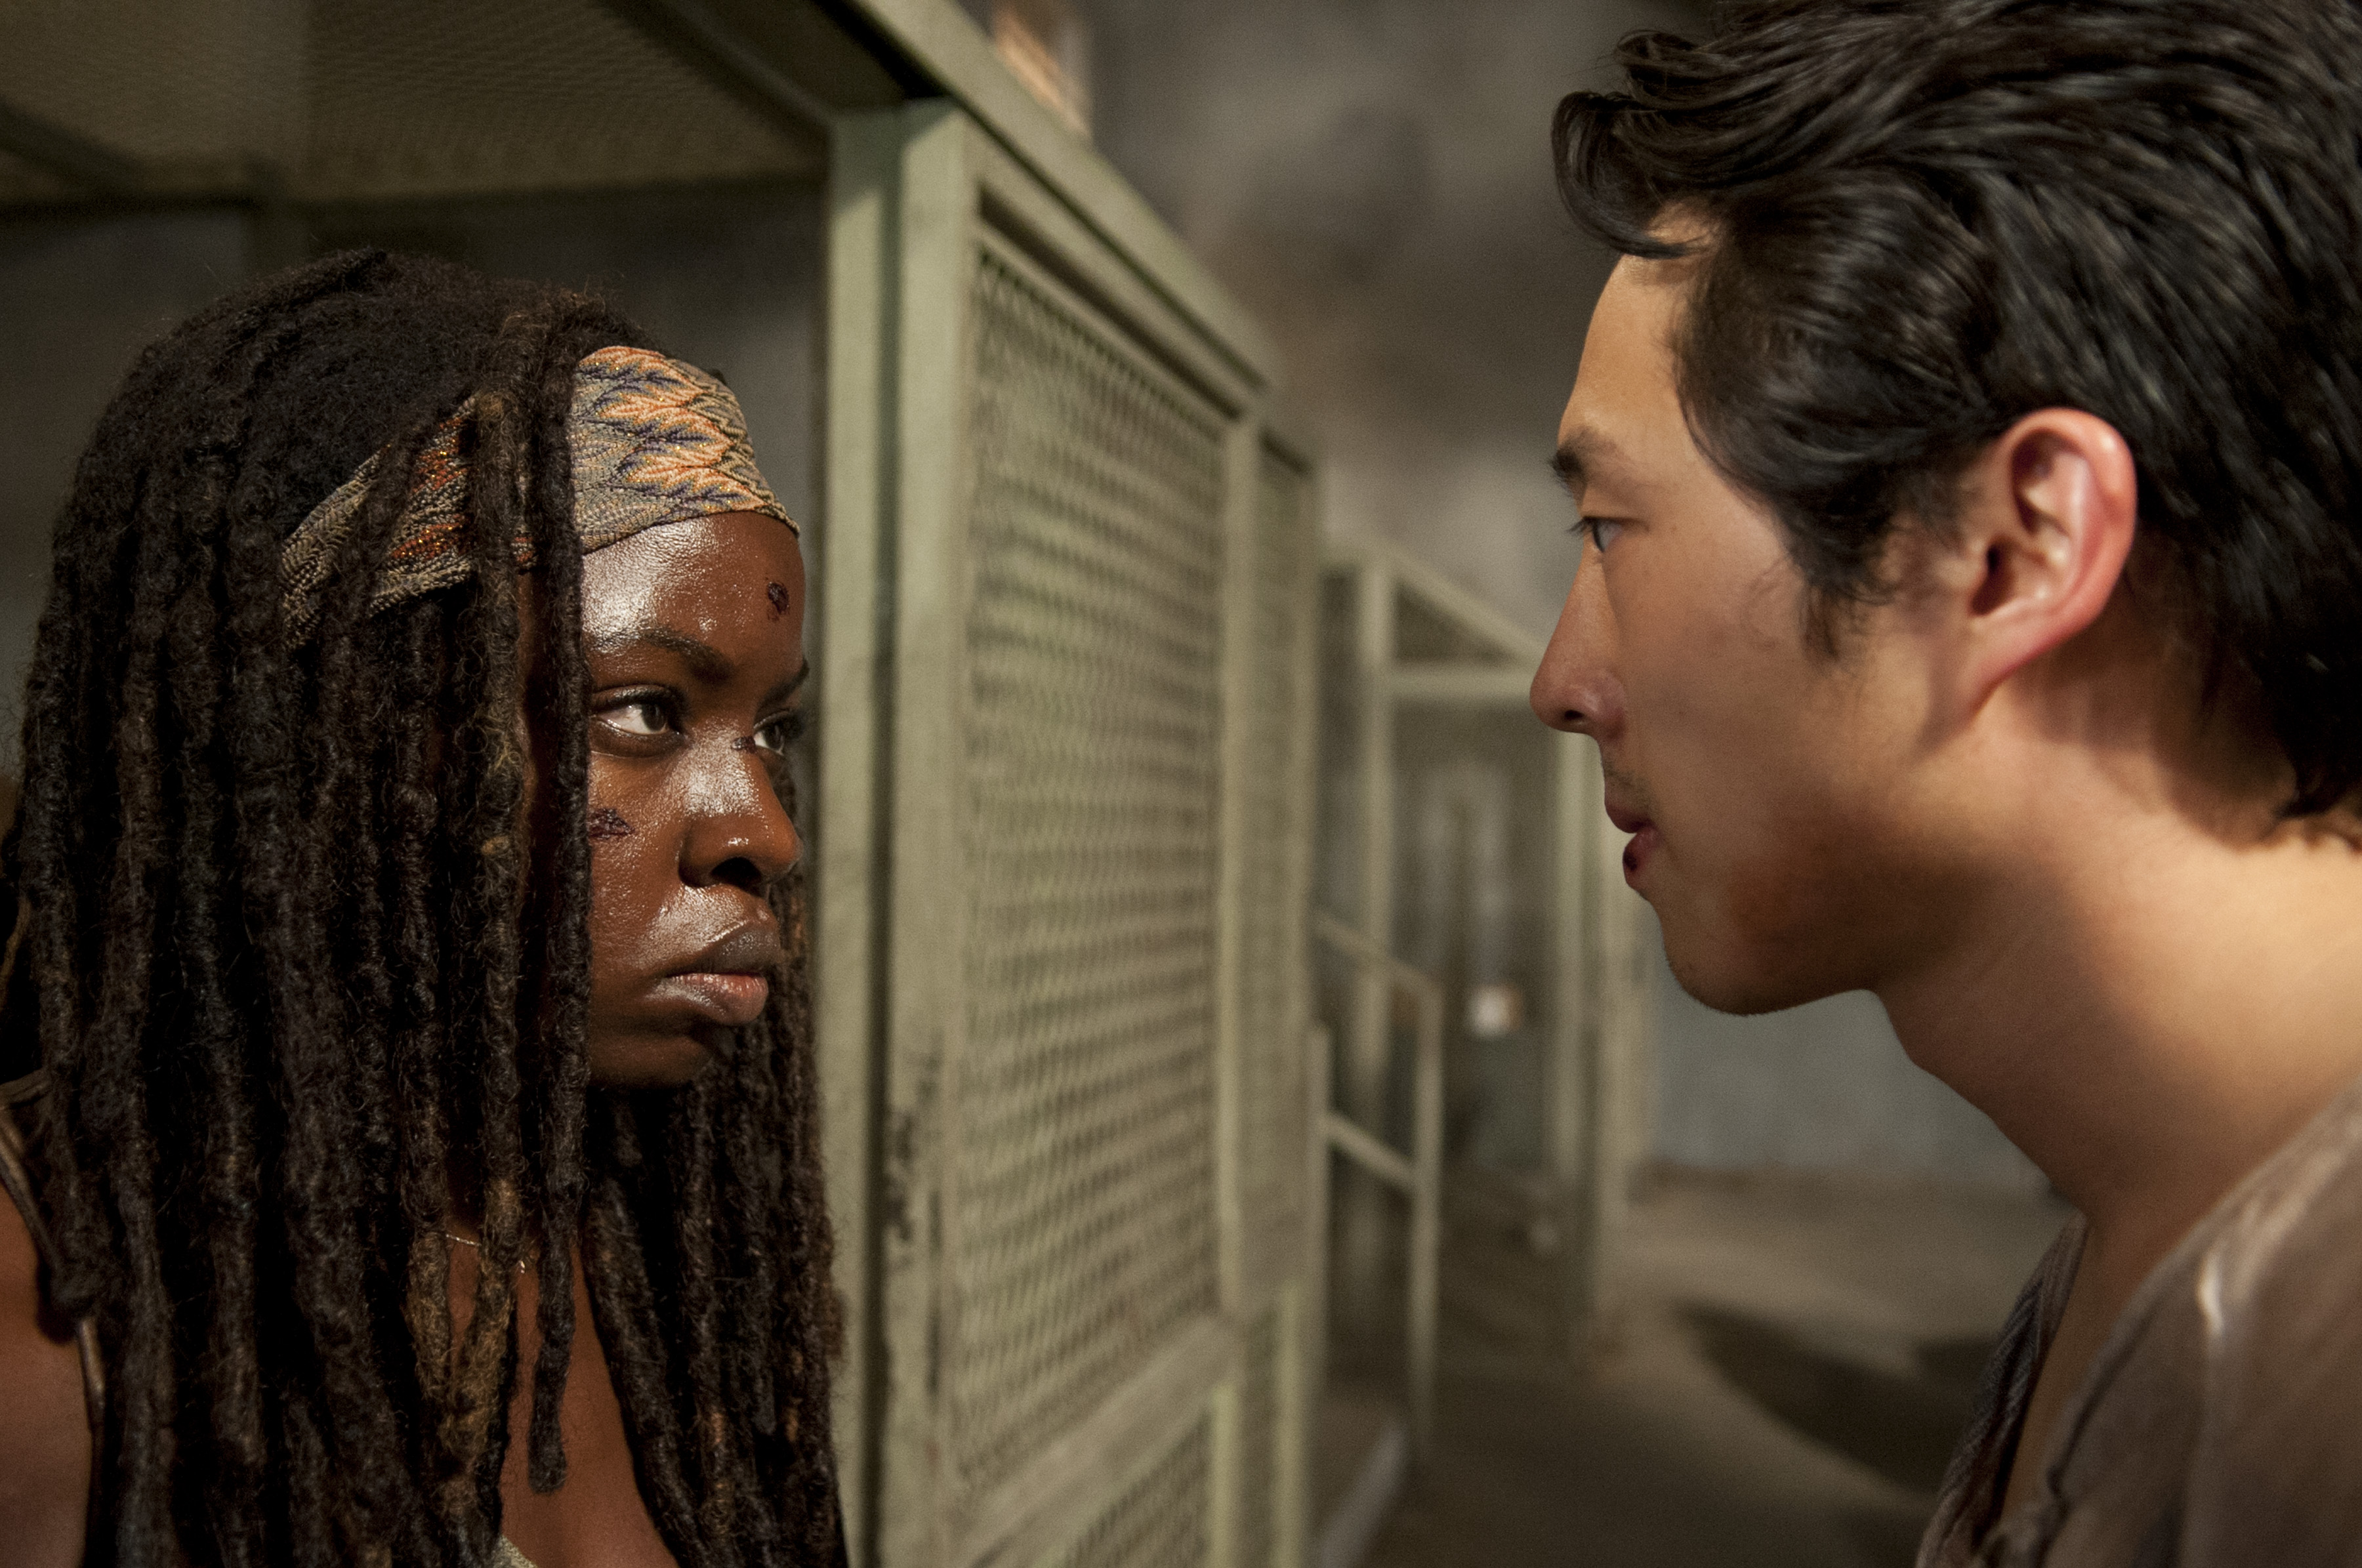 Michonne and Glenn in The Walking Dead Exclusive: Photos from The Walking Dead Season 3 Episode 10 Home